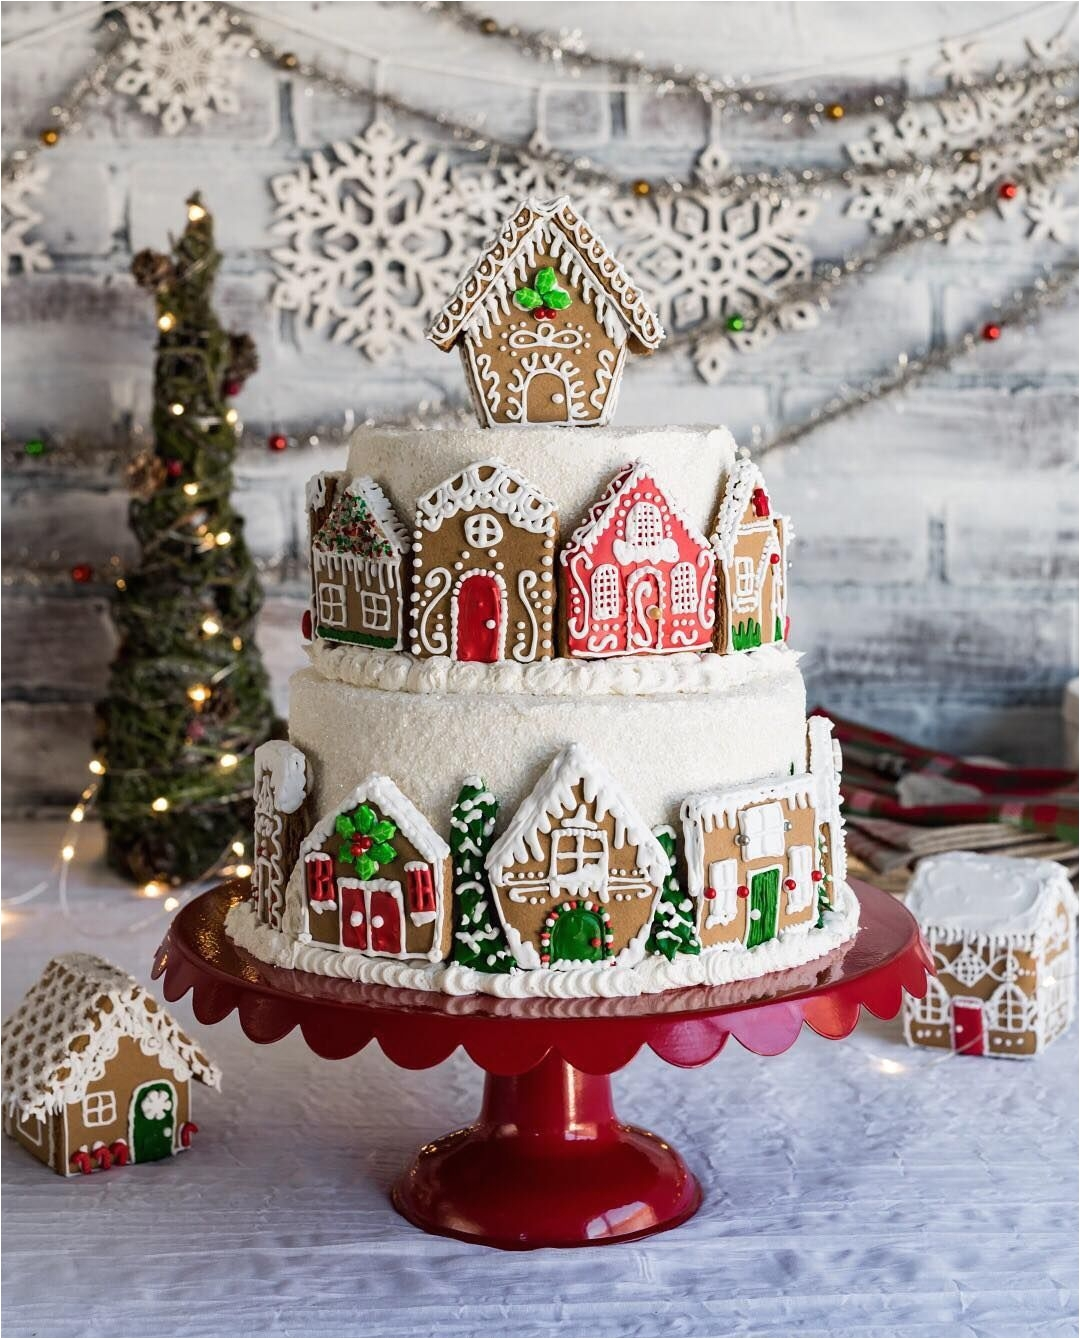 gingerbread christmas theme decorations gingerbreadlayer cake with fig filling and white chocolate - Gingerbread Christmas Decorations